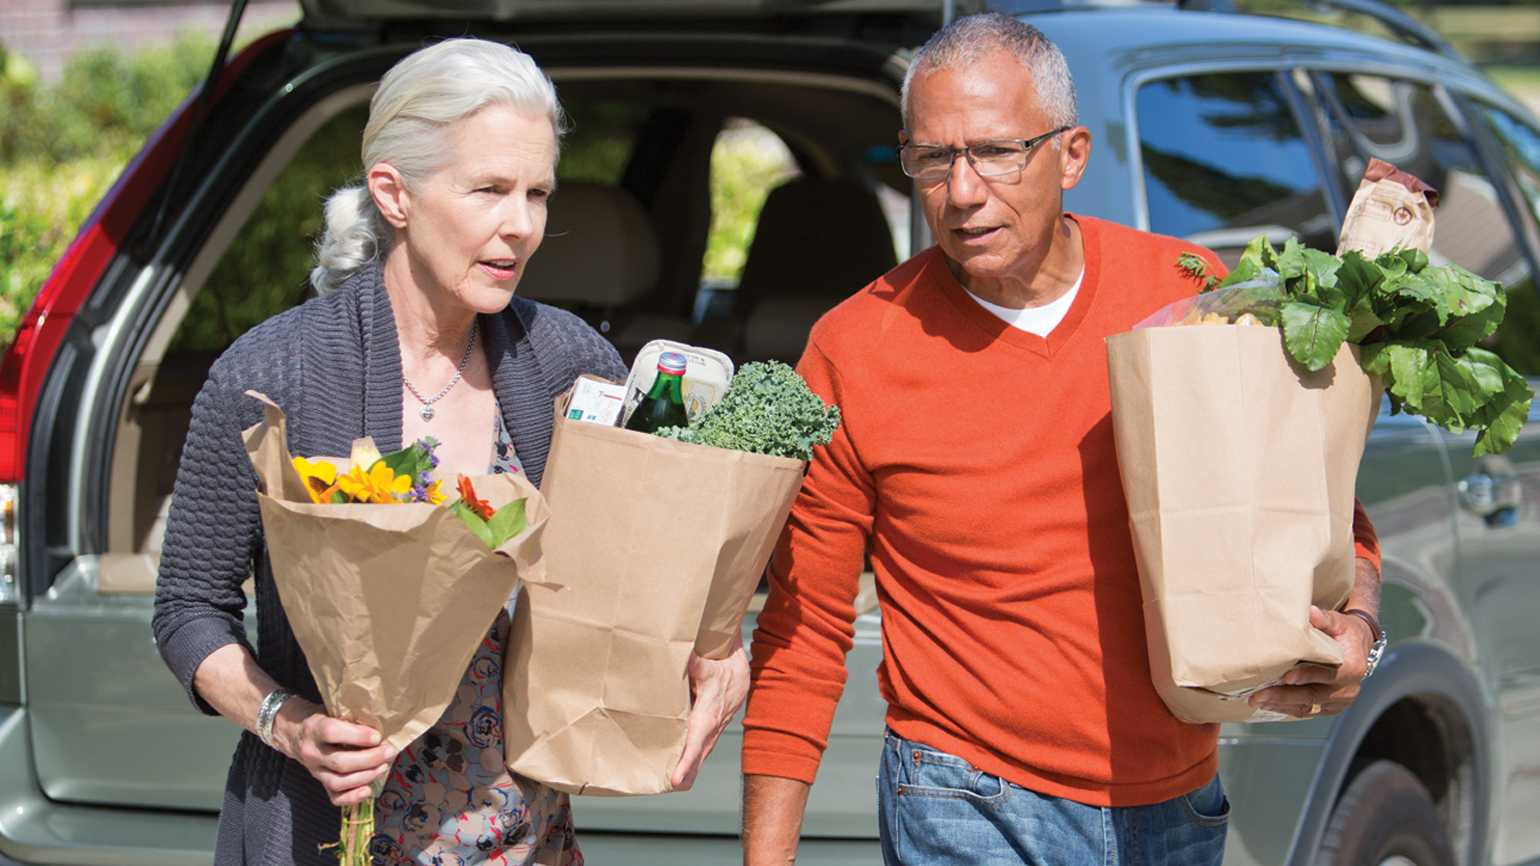 An elderly couple carrying bags of various groceries out of their car.